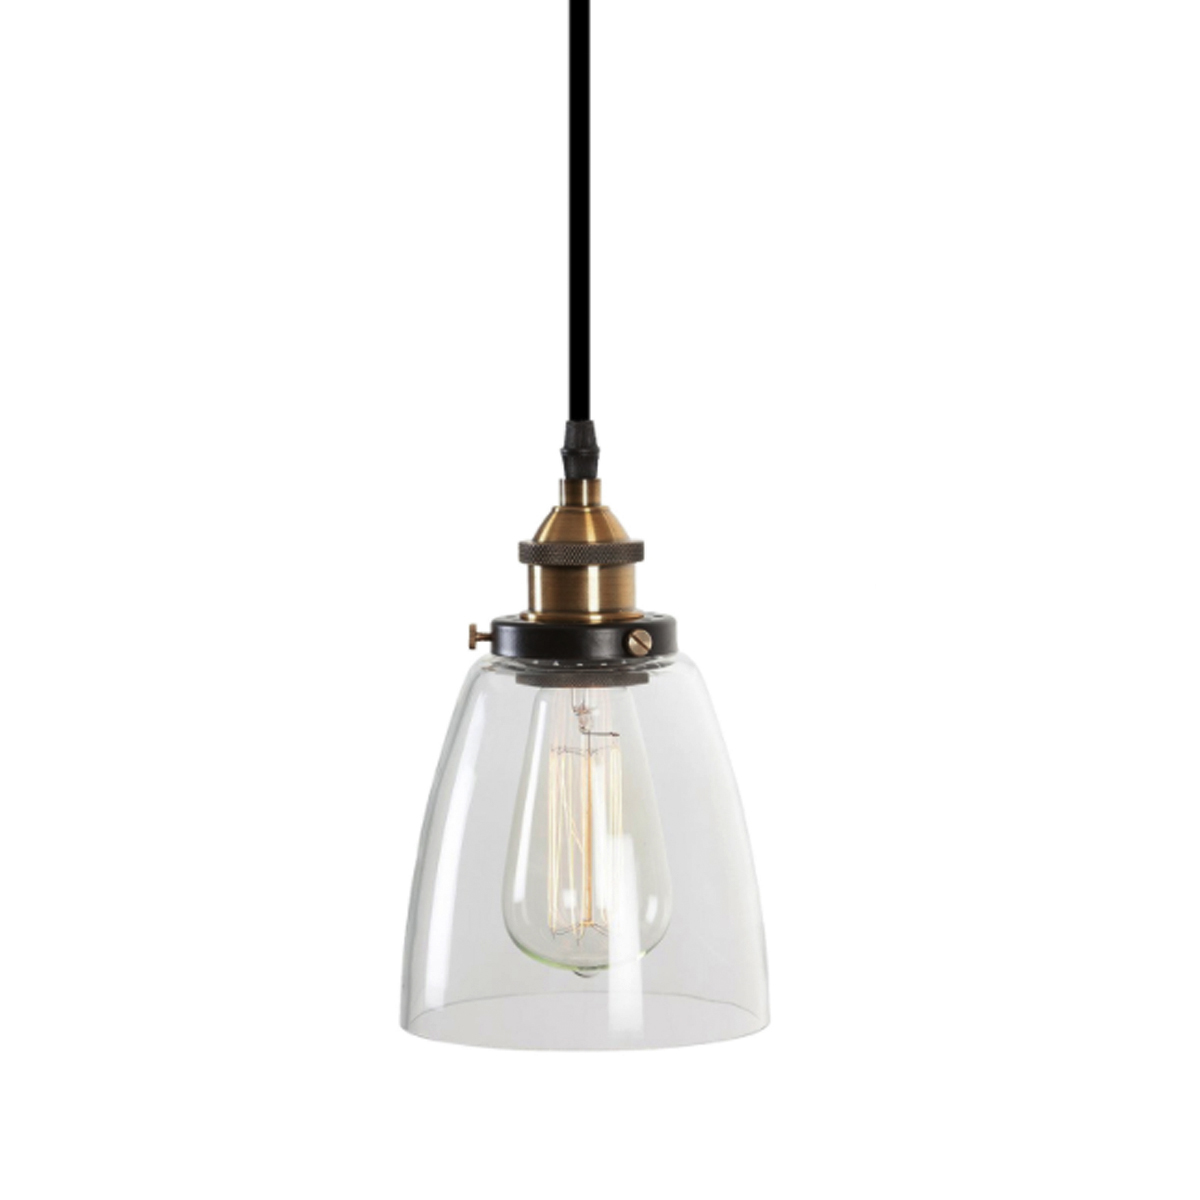 Pendant lights temple webster lucy glass pendant light aloadofball